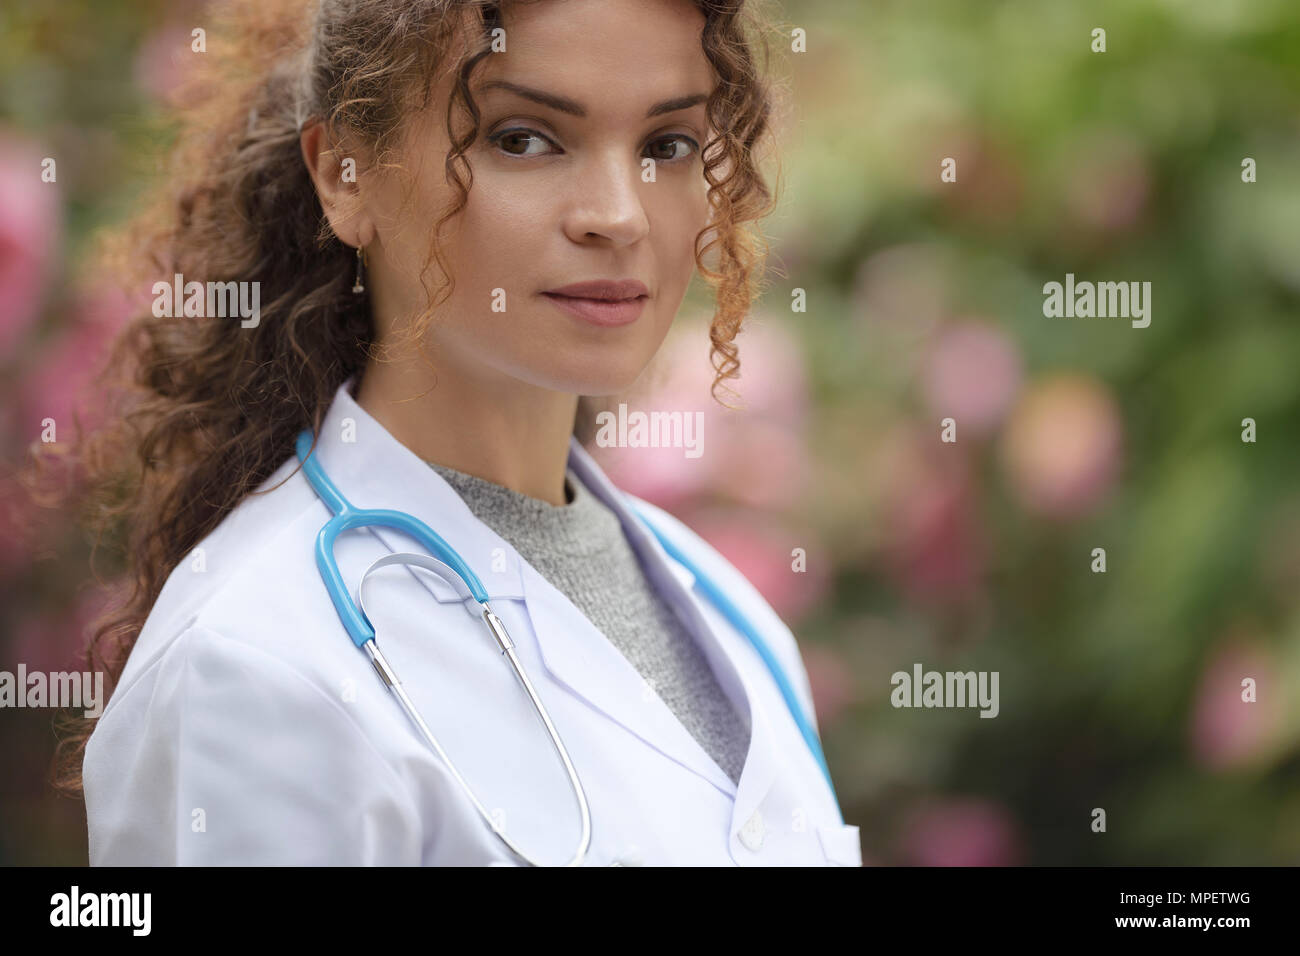 Portrait of a young woman, doctor, physician, medical practitioner in lab coat in natural outdoor settings Stock Photo